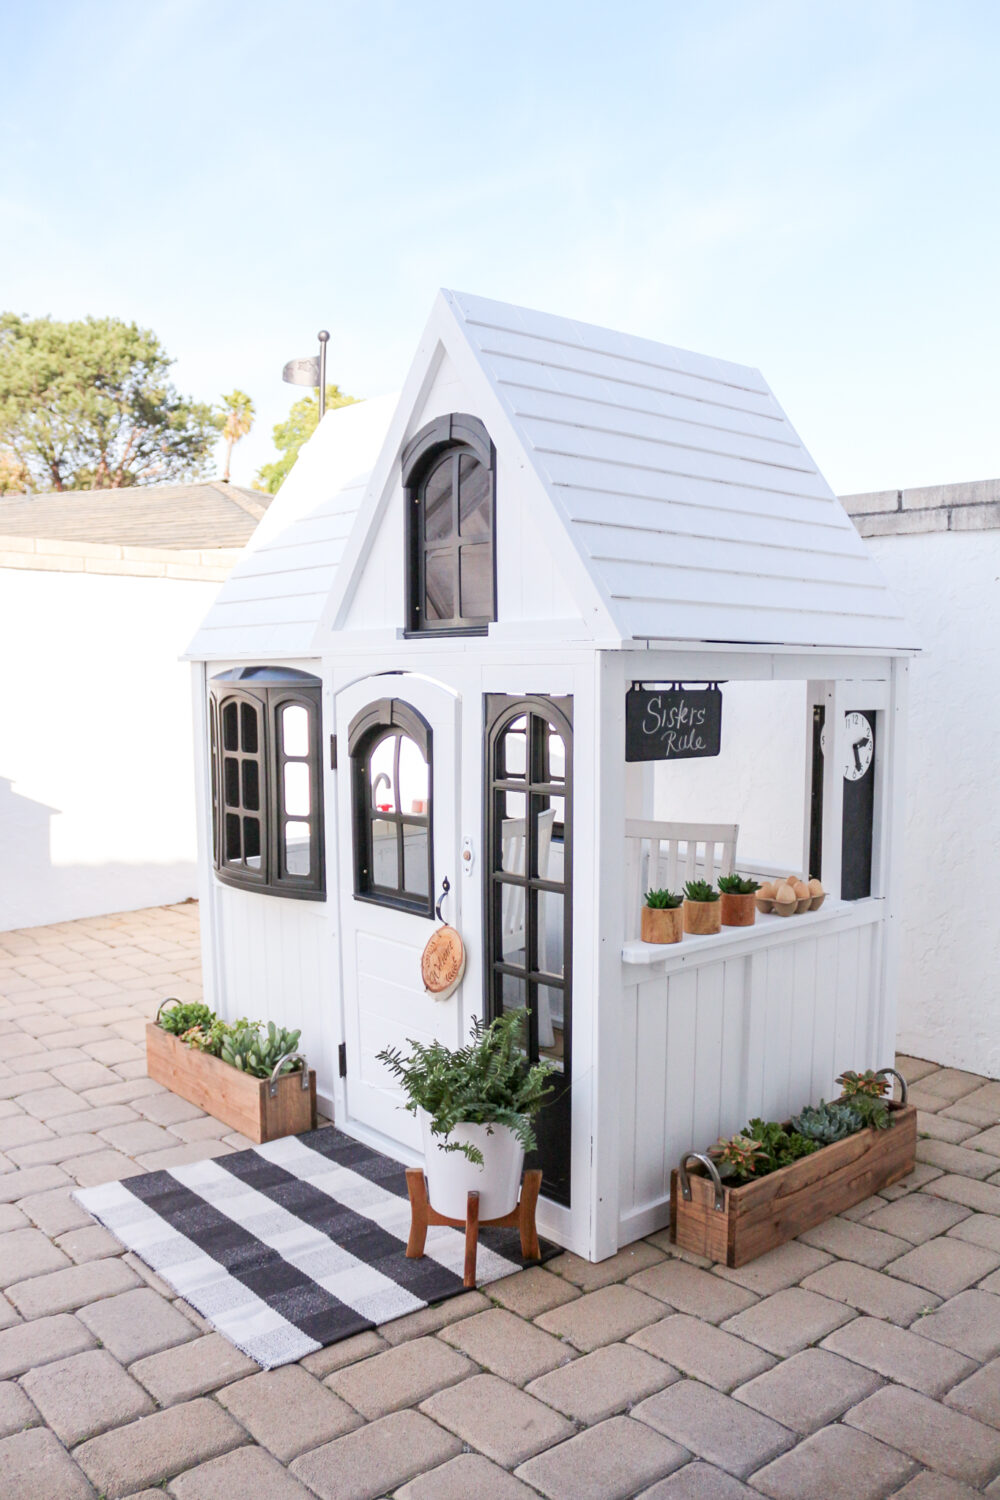 Adorable Farmhouse Playhouse Makeovers - You guys have to see these adorable playhouse makeovers. All it takes is a little creativity, some paint, and some kiddie decorations.